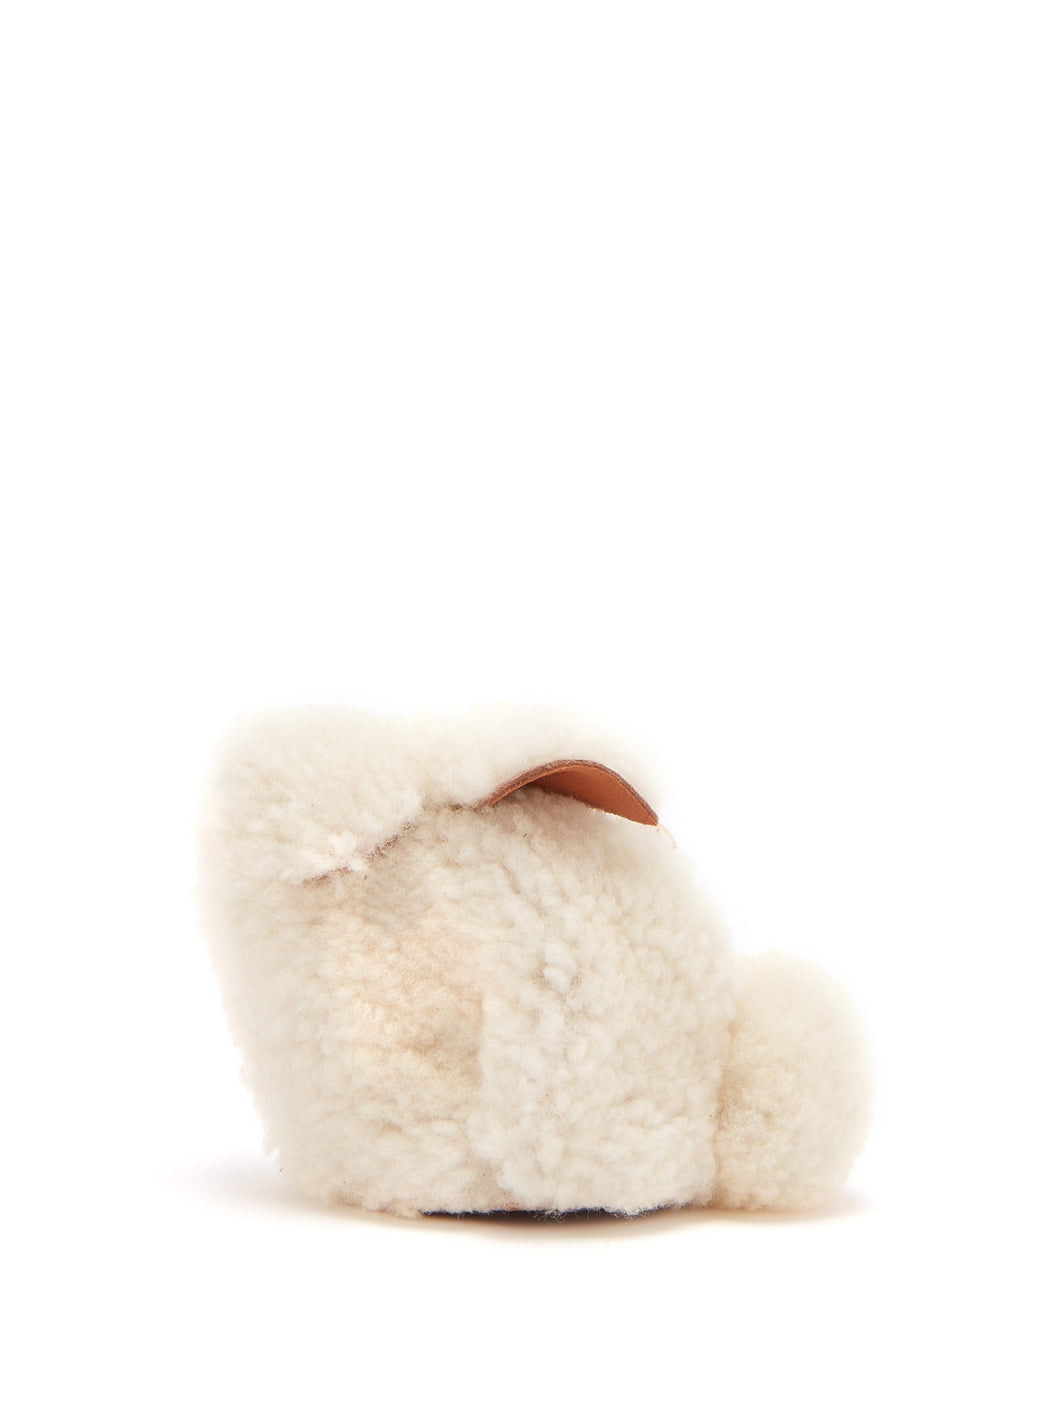 Bunny shearling coin purse